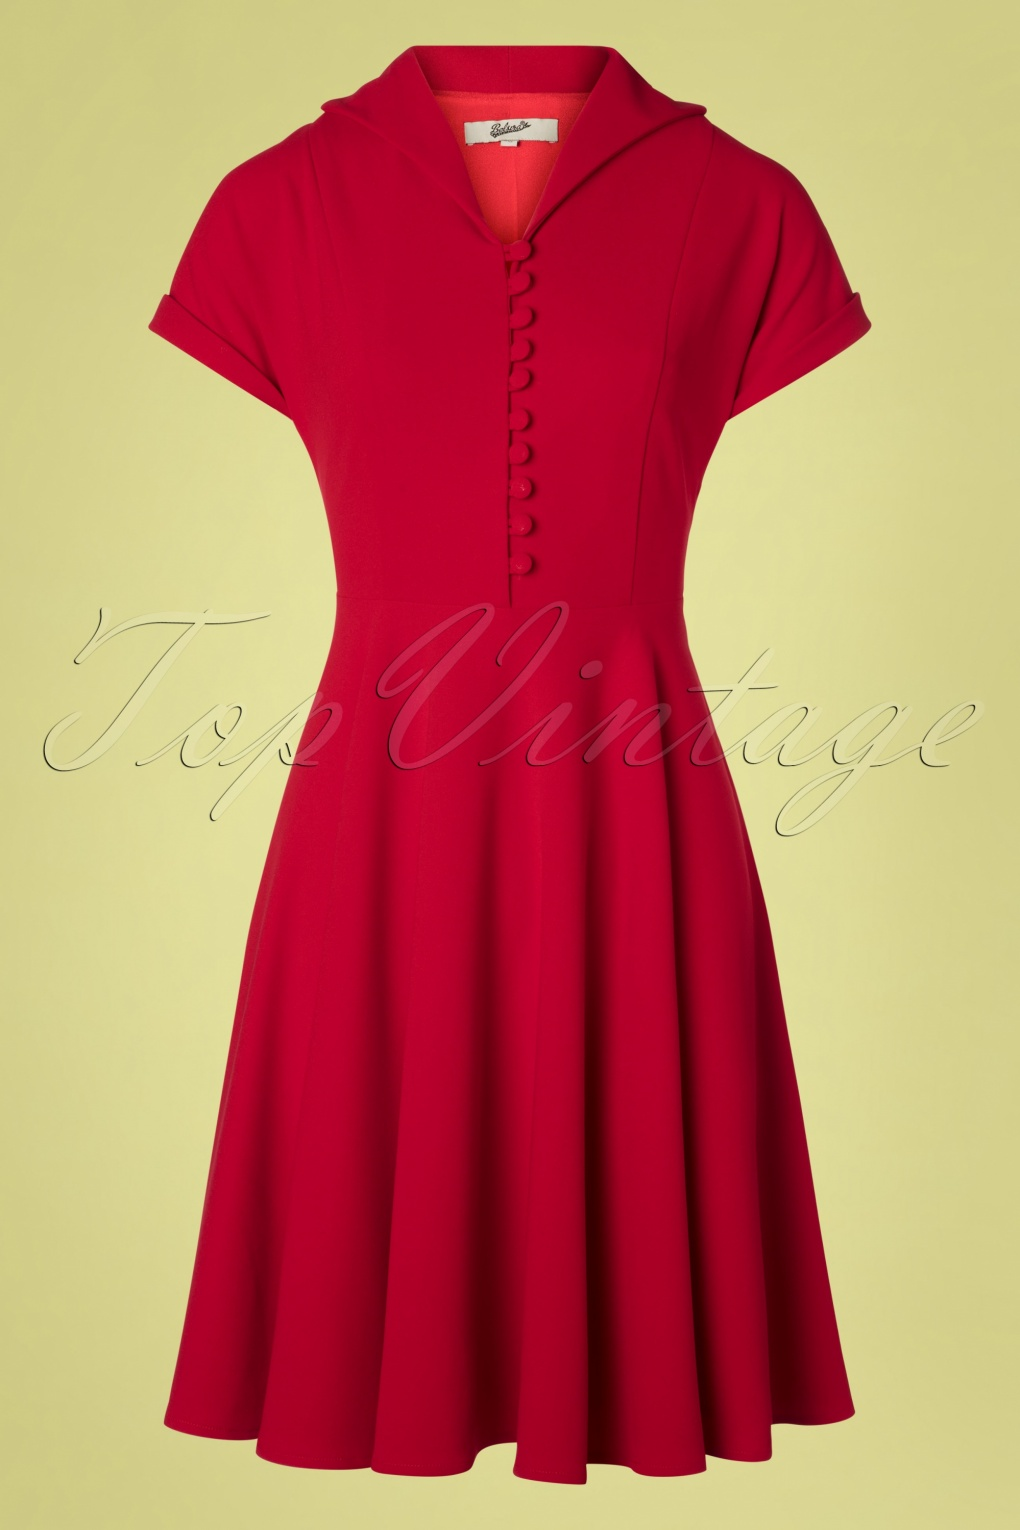 1950s Fashion History: Women's Clothing 40s Valencia Swing Dress in Deep Red £72.32 AT vintagedancer.com